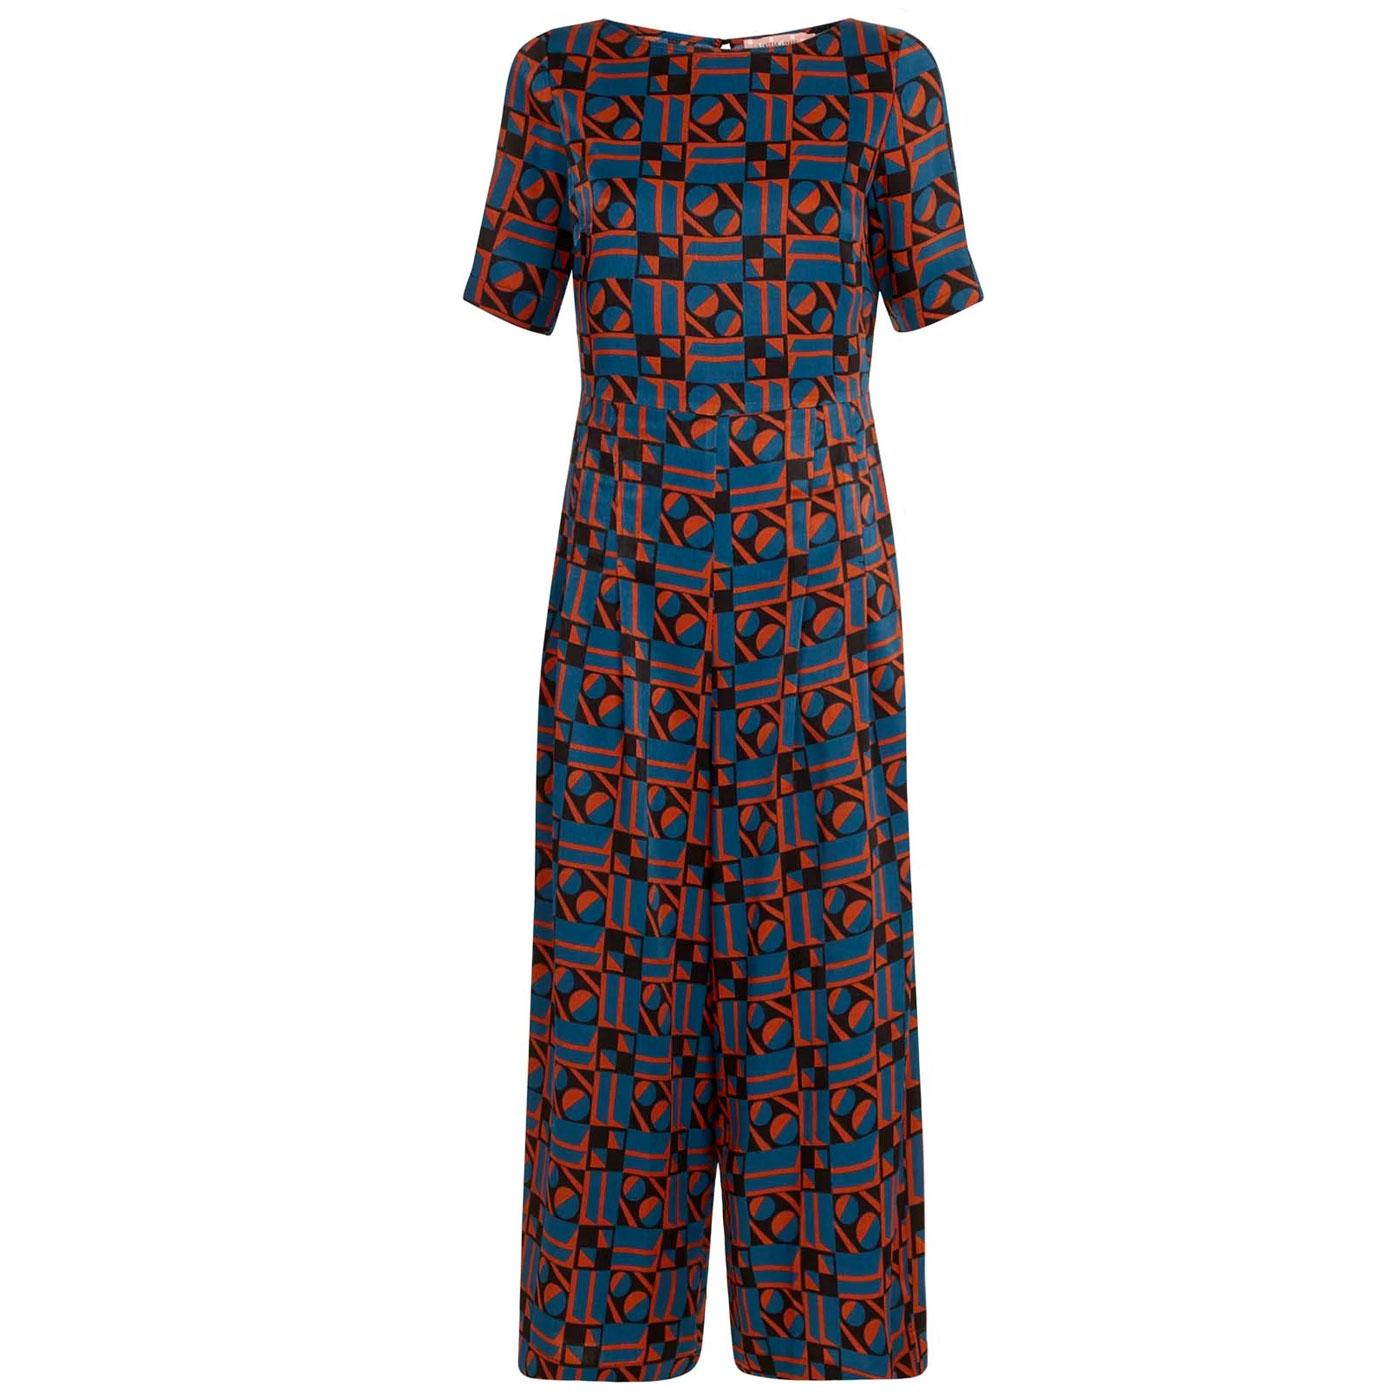 Bianca TRAFFIC PEOPLE 1960's Retro Jumpsuit